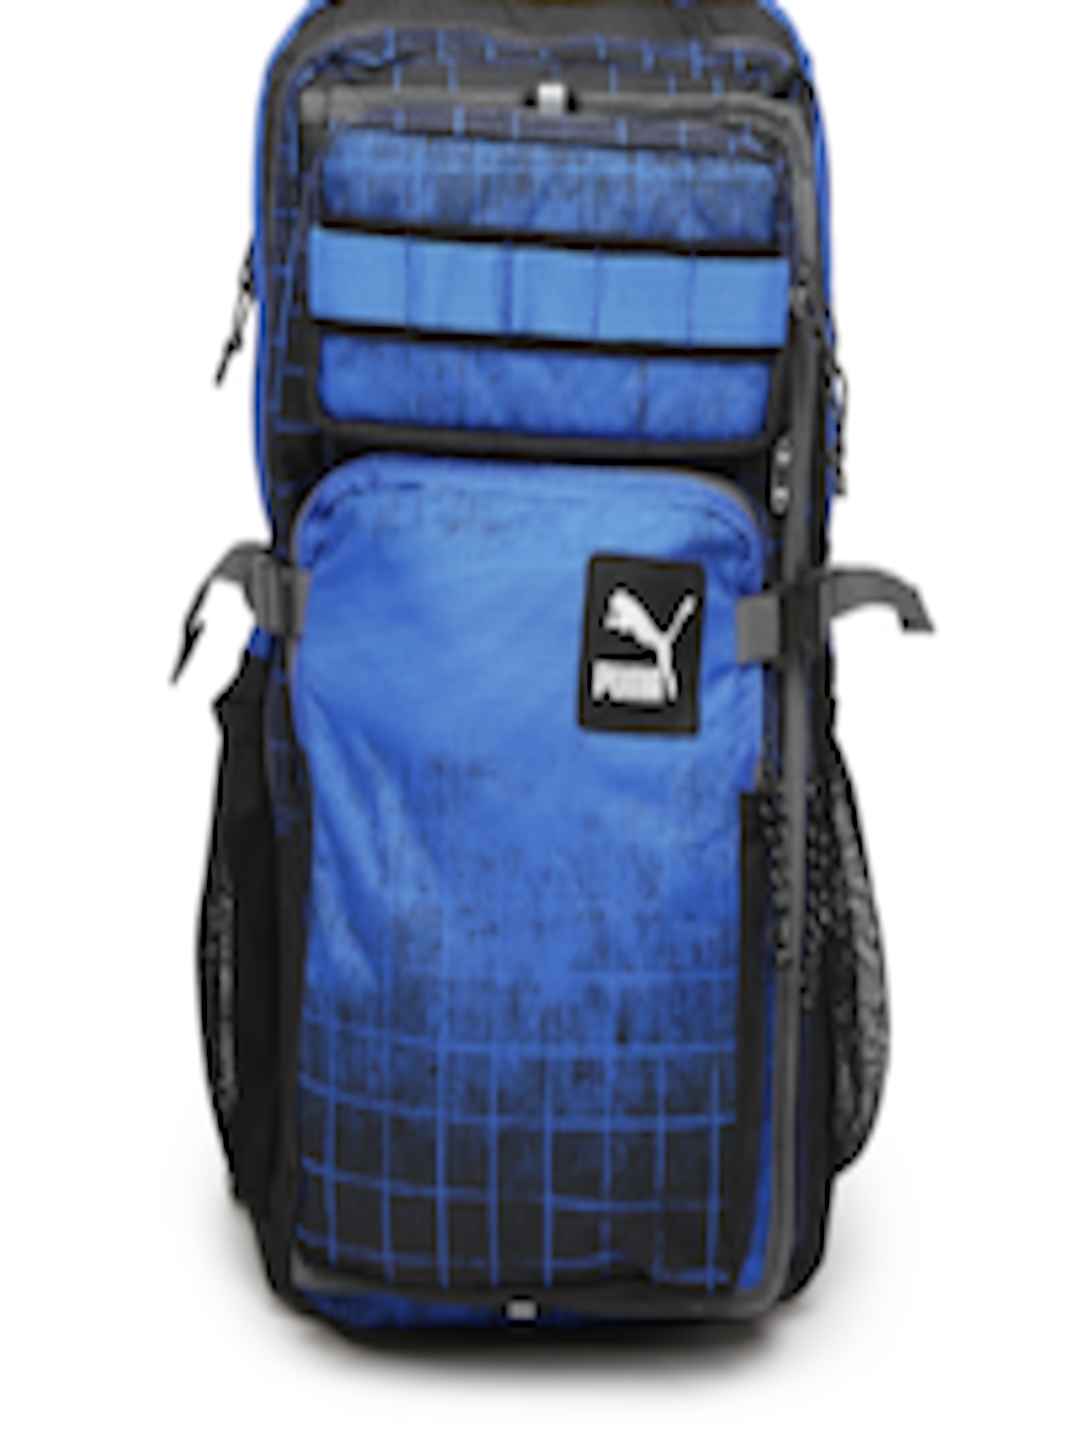 49071a5278 Buy PUMA Unisex Black   Blue Evo Blaze Backpack - Backpacks for Unisex  715852